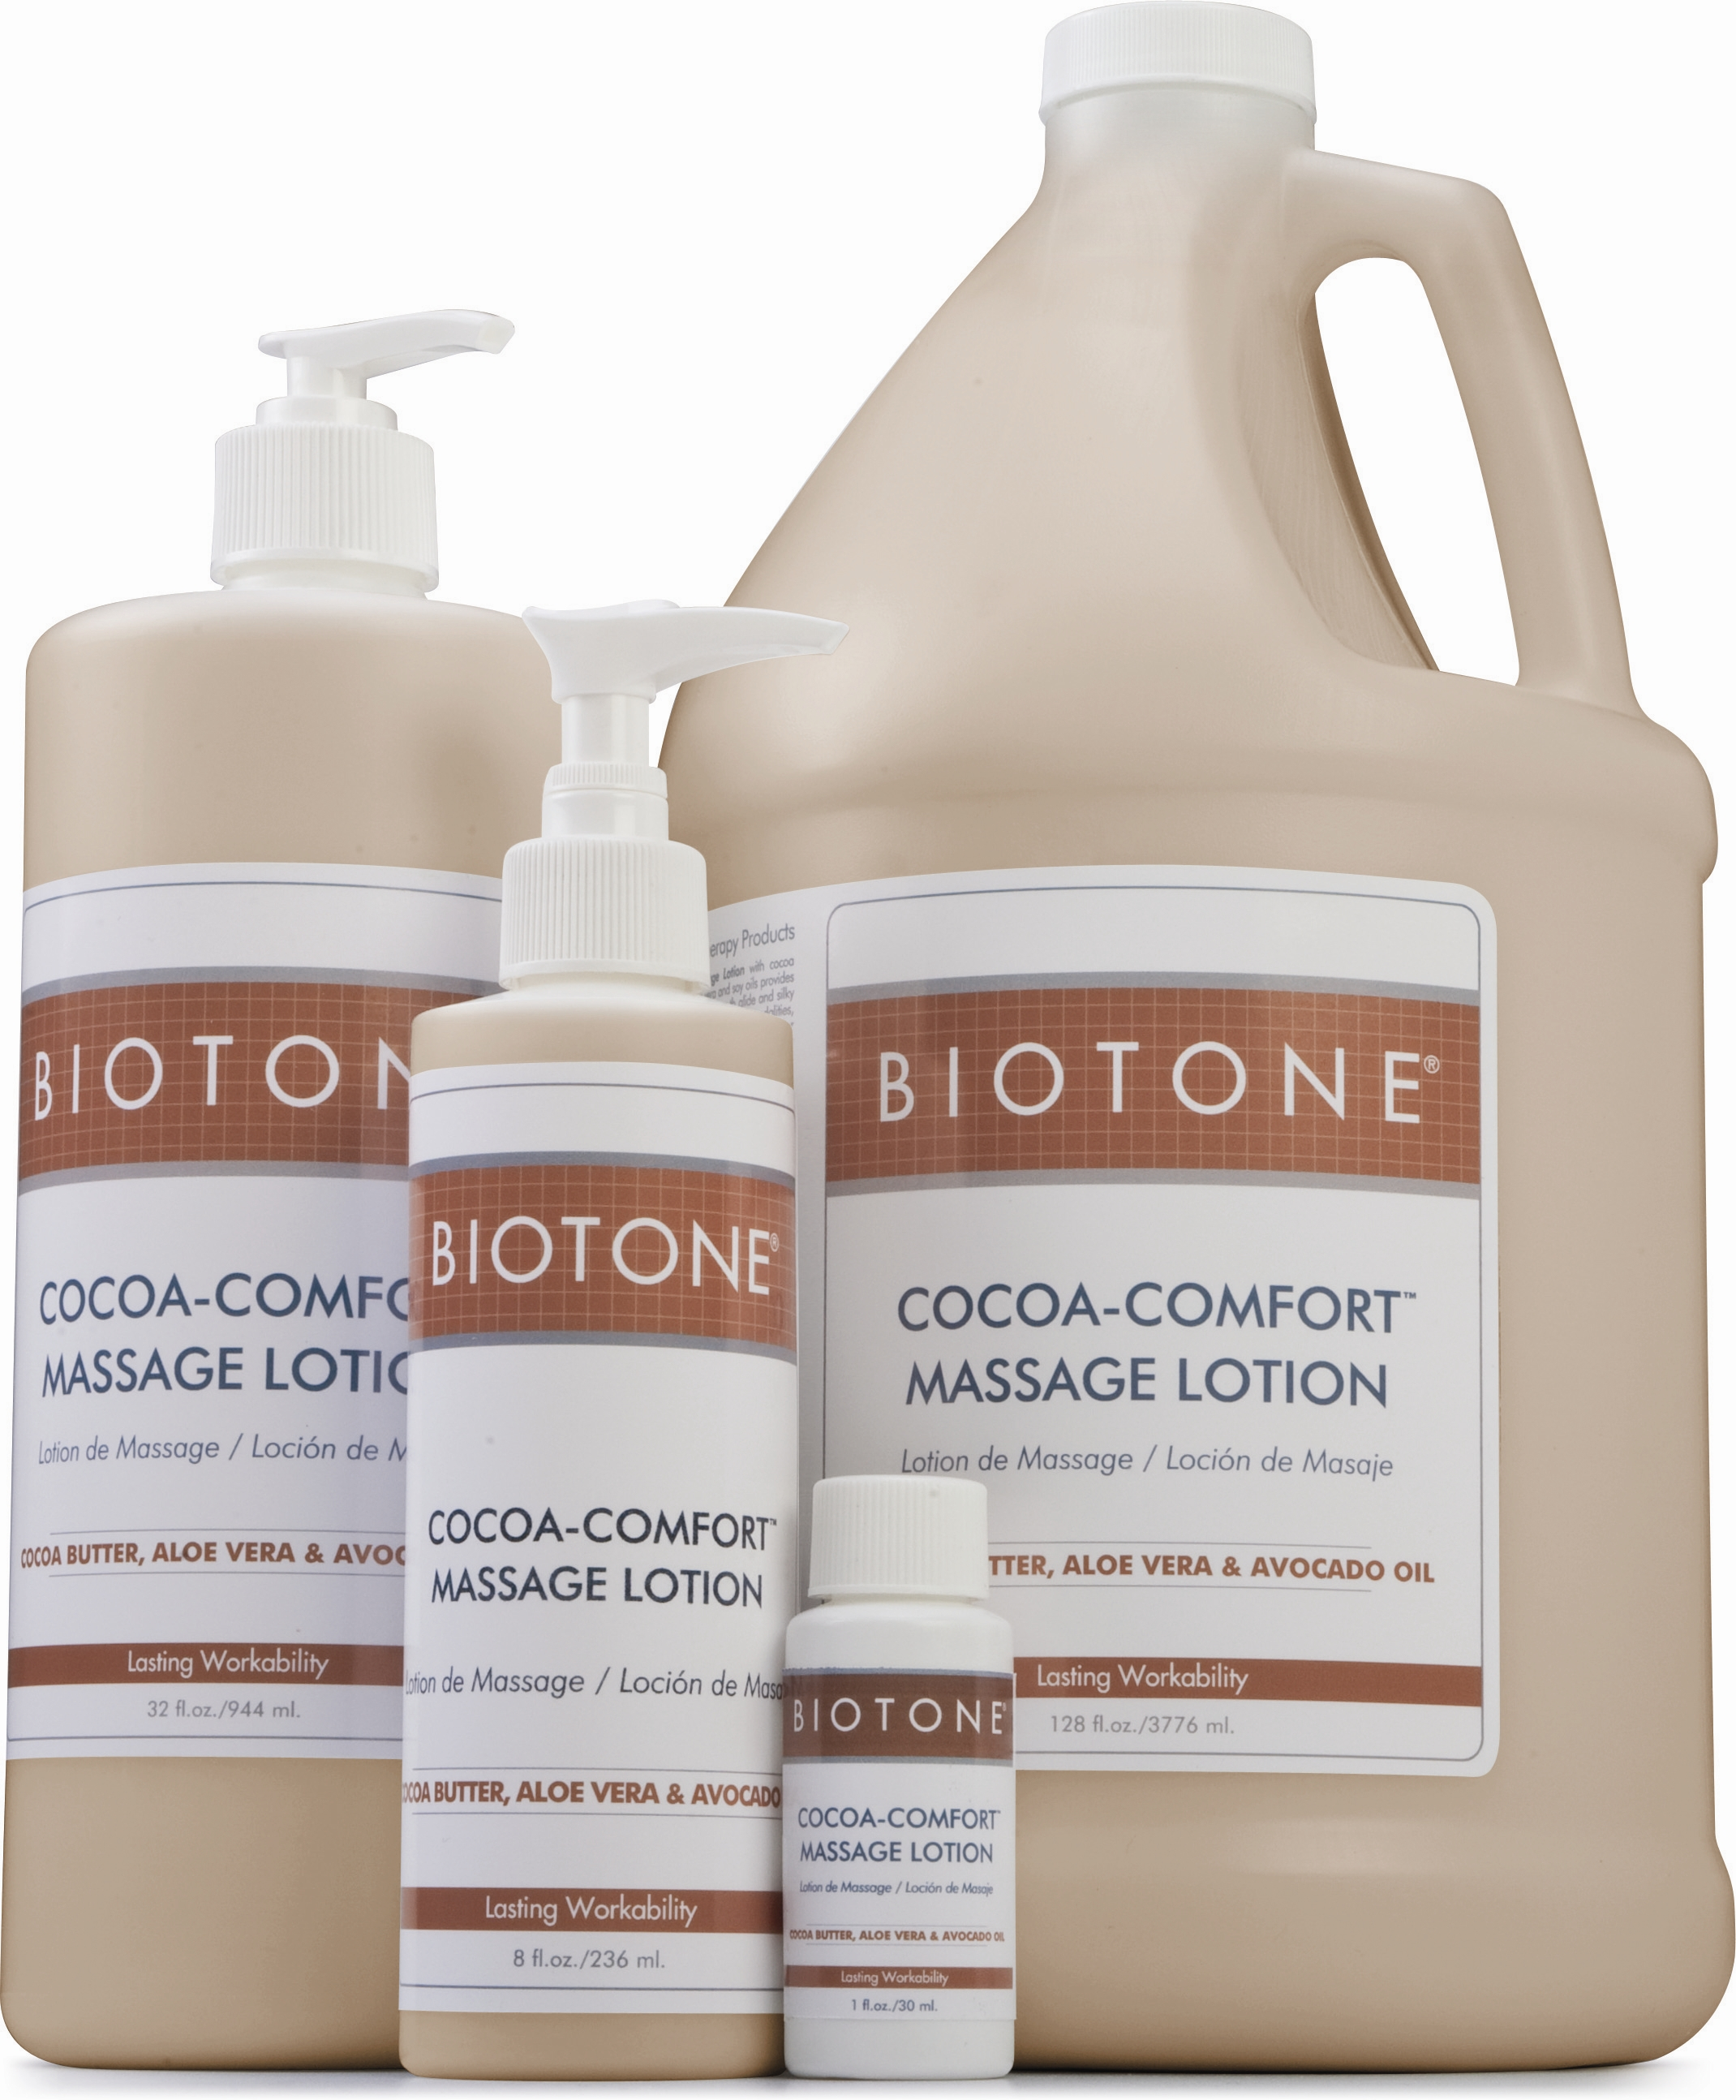 BIOTONE Introduces Cocoa-Comfort New Massage Lotion, Industry News, MASSAGE Magazine